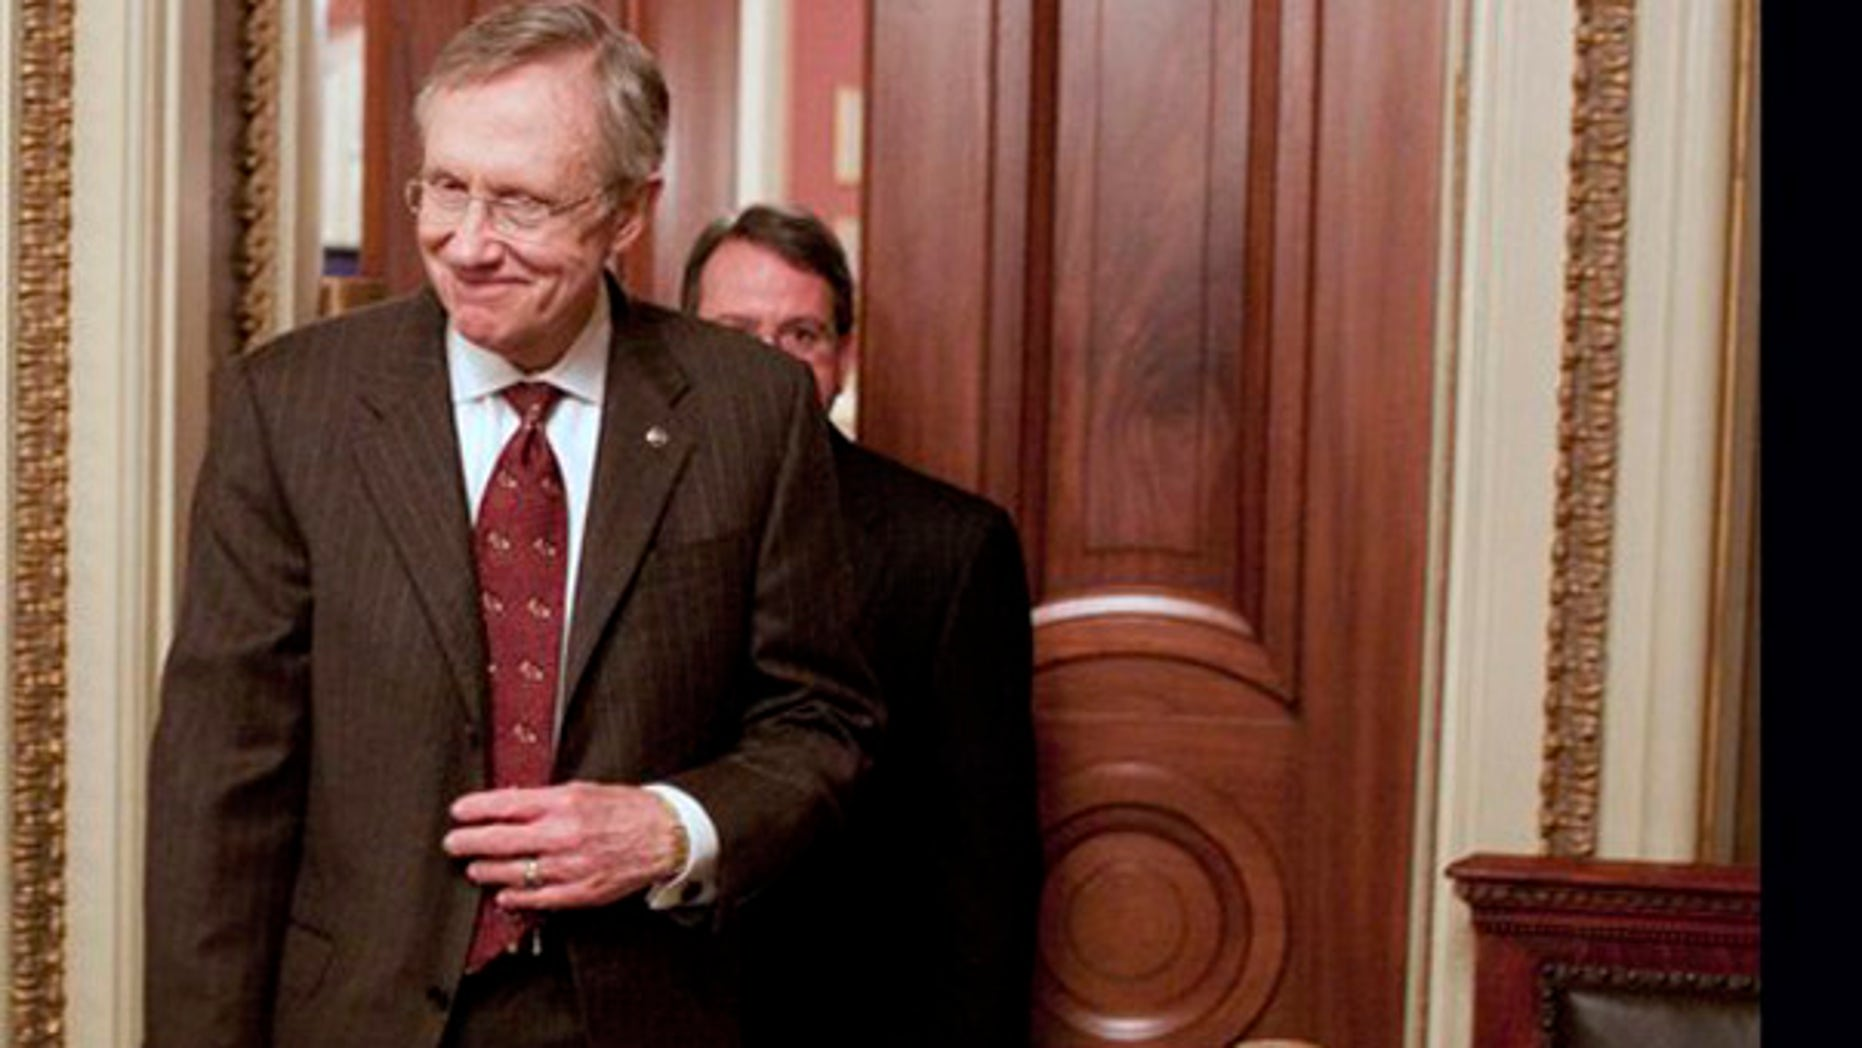 File: Senate Majority Leader Harry Reid, D-Nev., leaves a Democratic caucus on Capitol Hill in Washington. (AP)